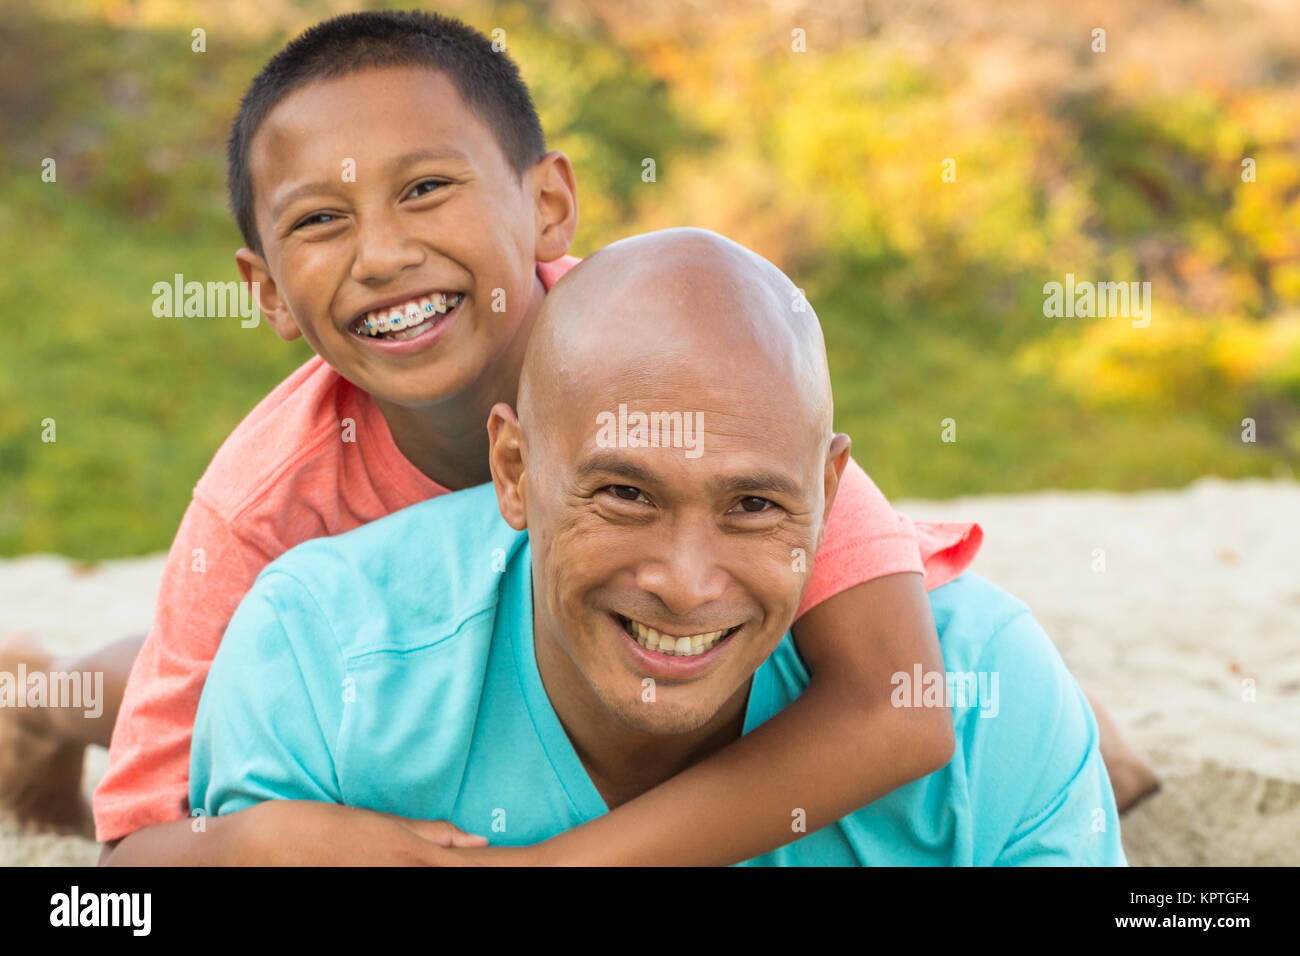 Father playing with his kids on the beach. - Stock Image